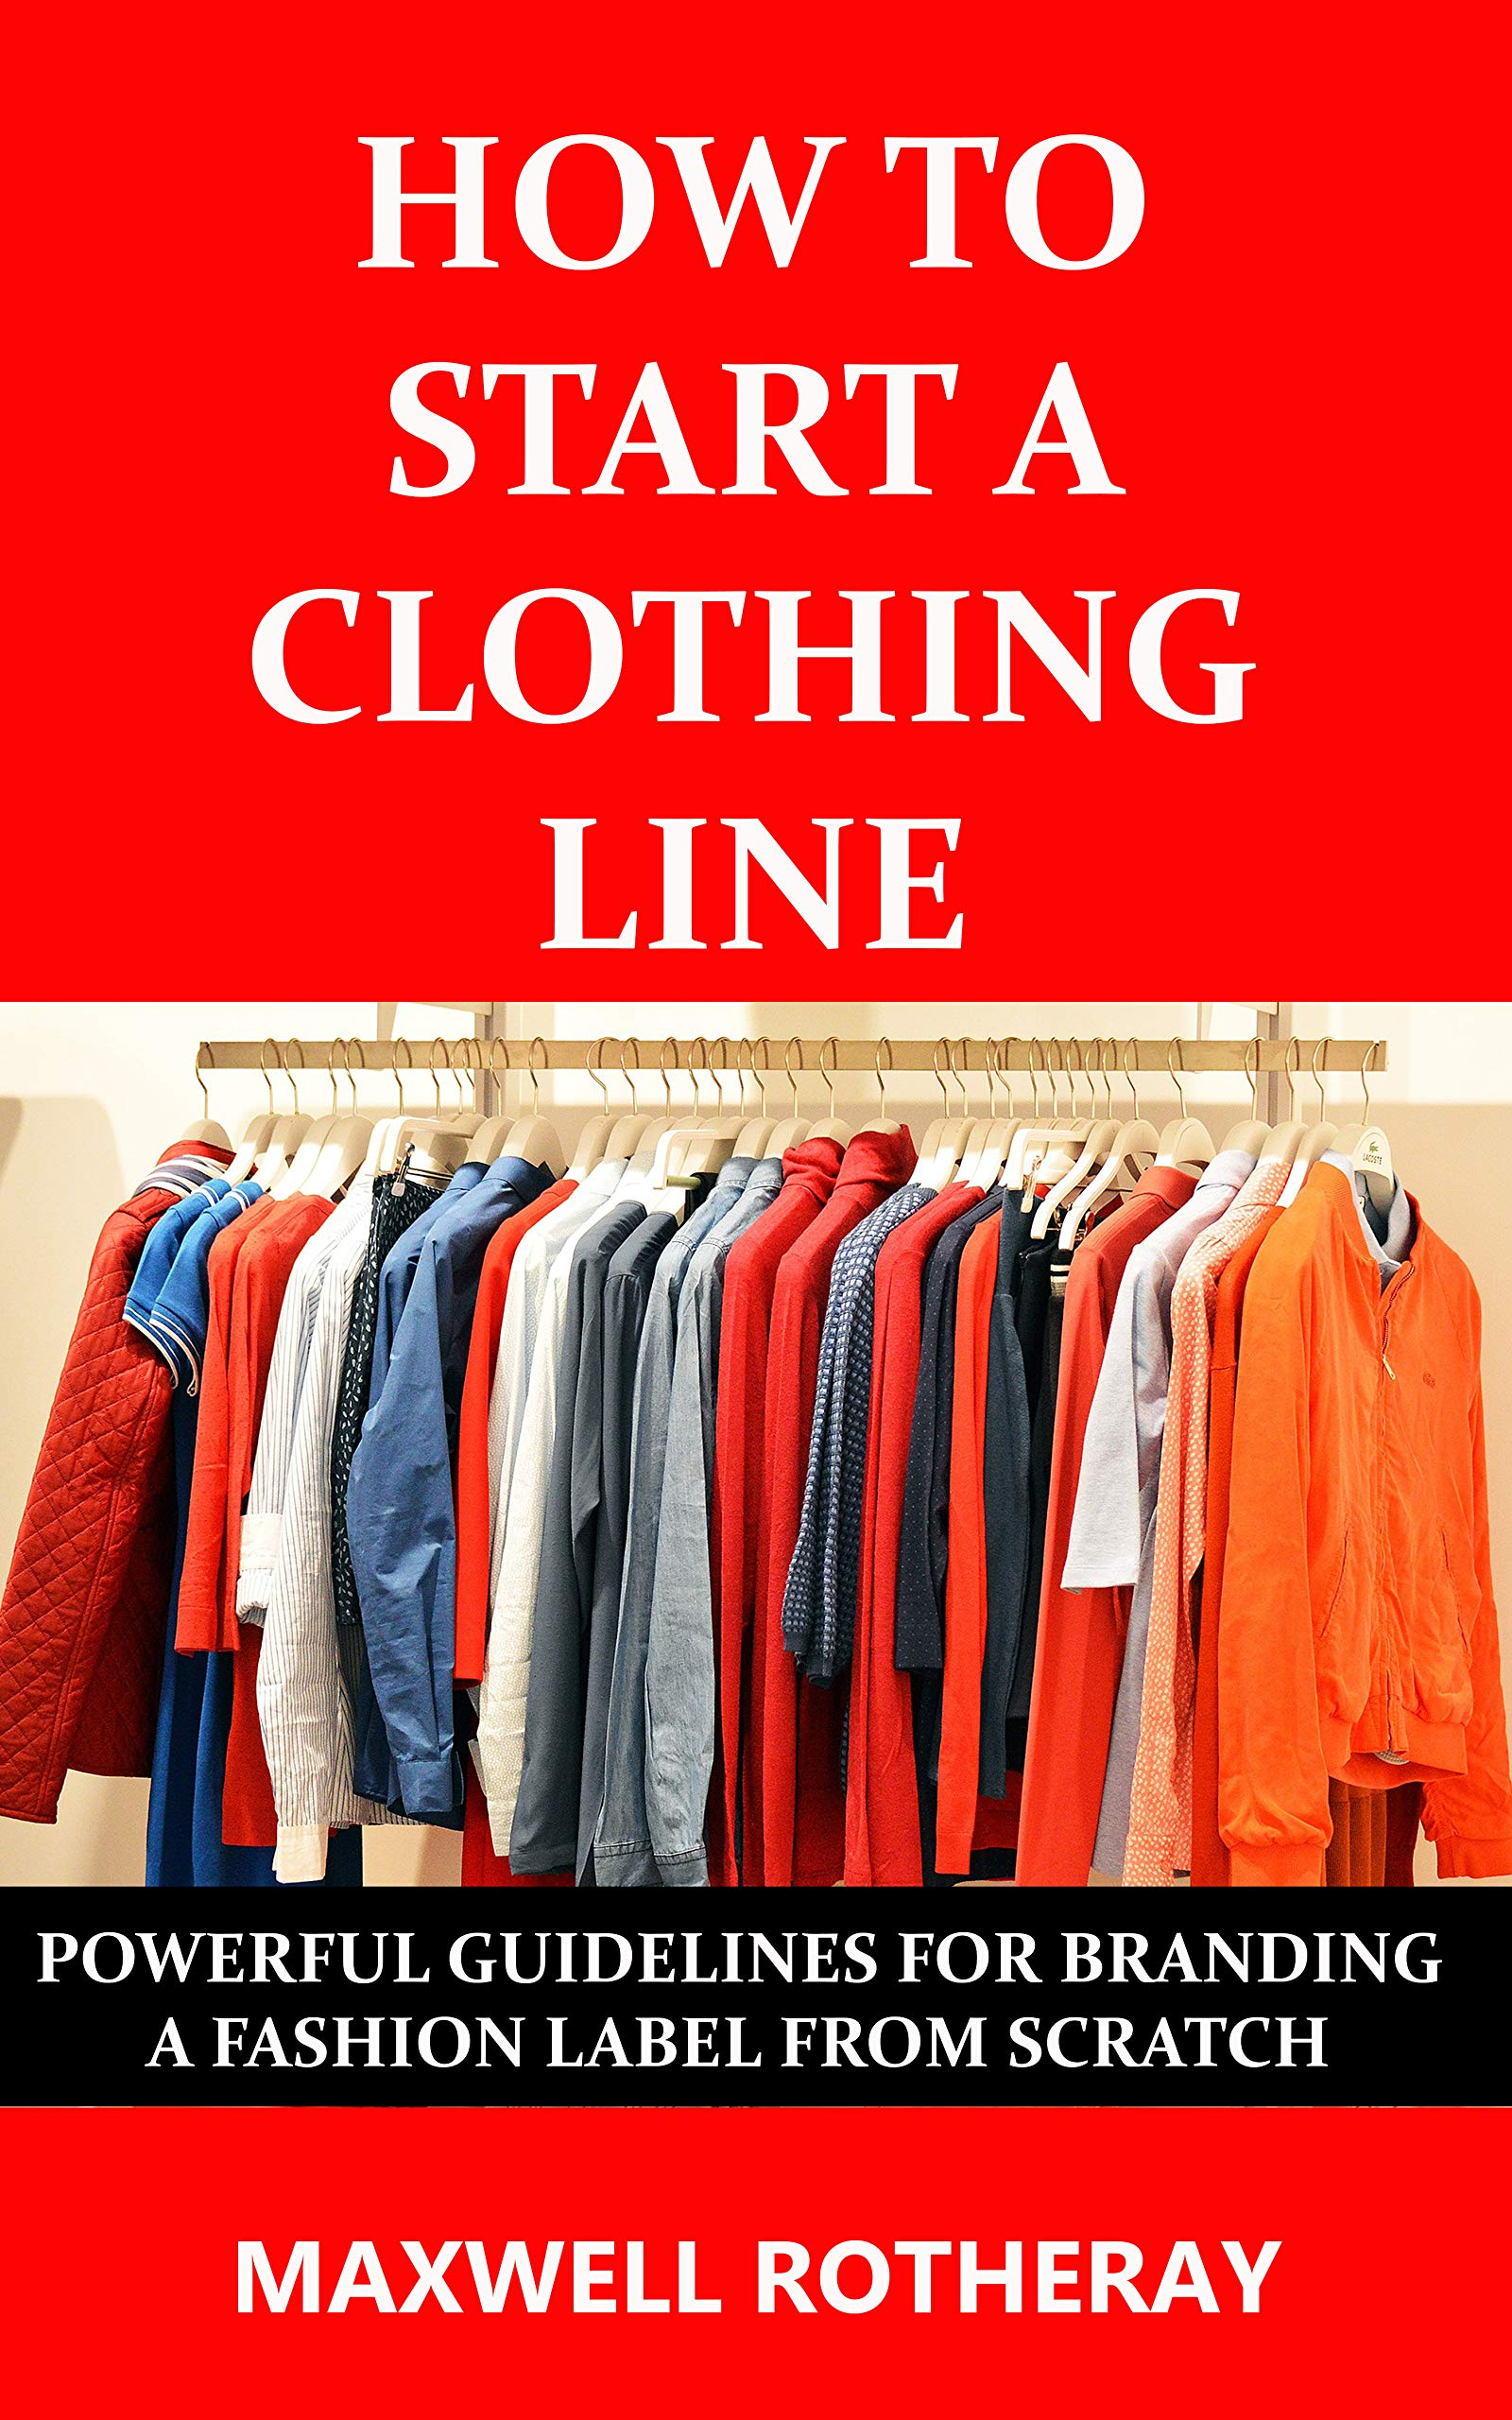 How to Start a Clothing Line: Powerful Guidelines for Branding a Fashion Label from Scratch